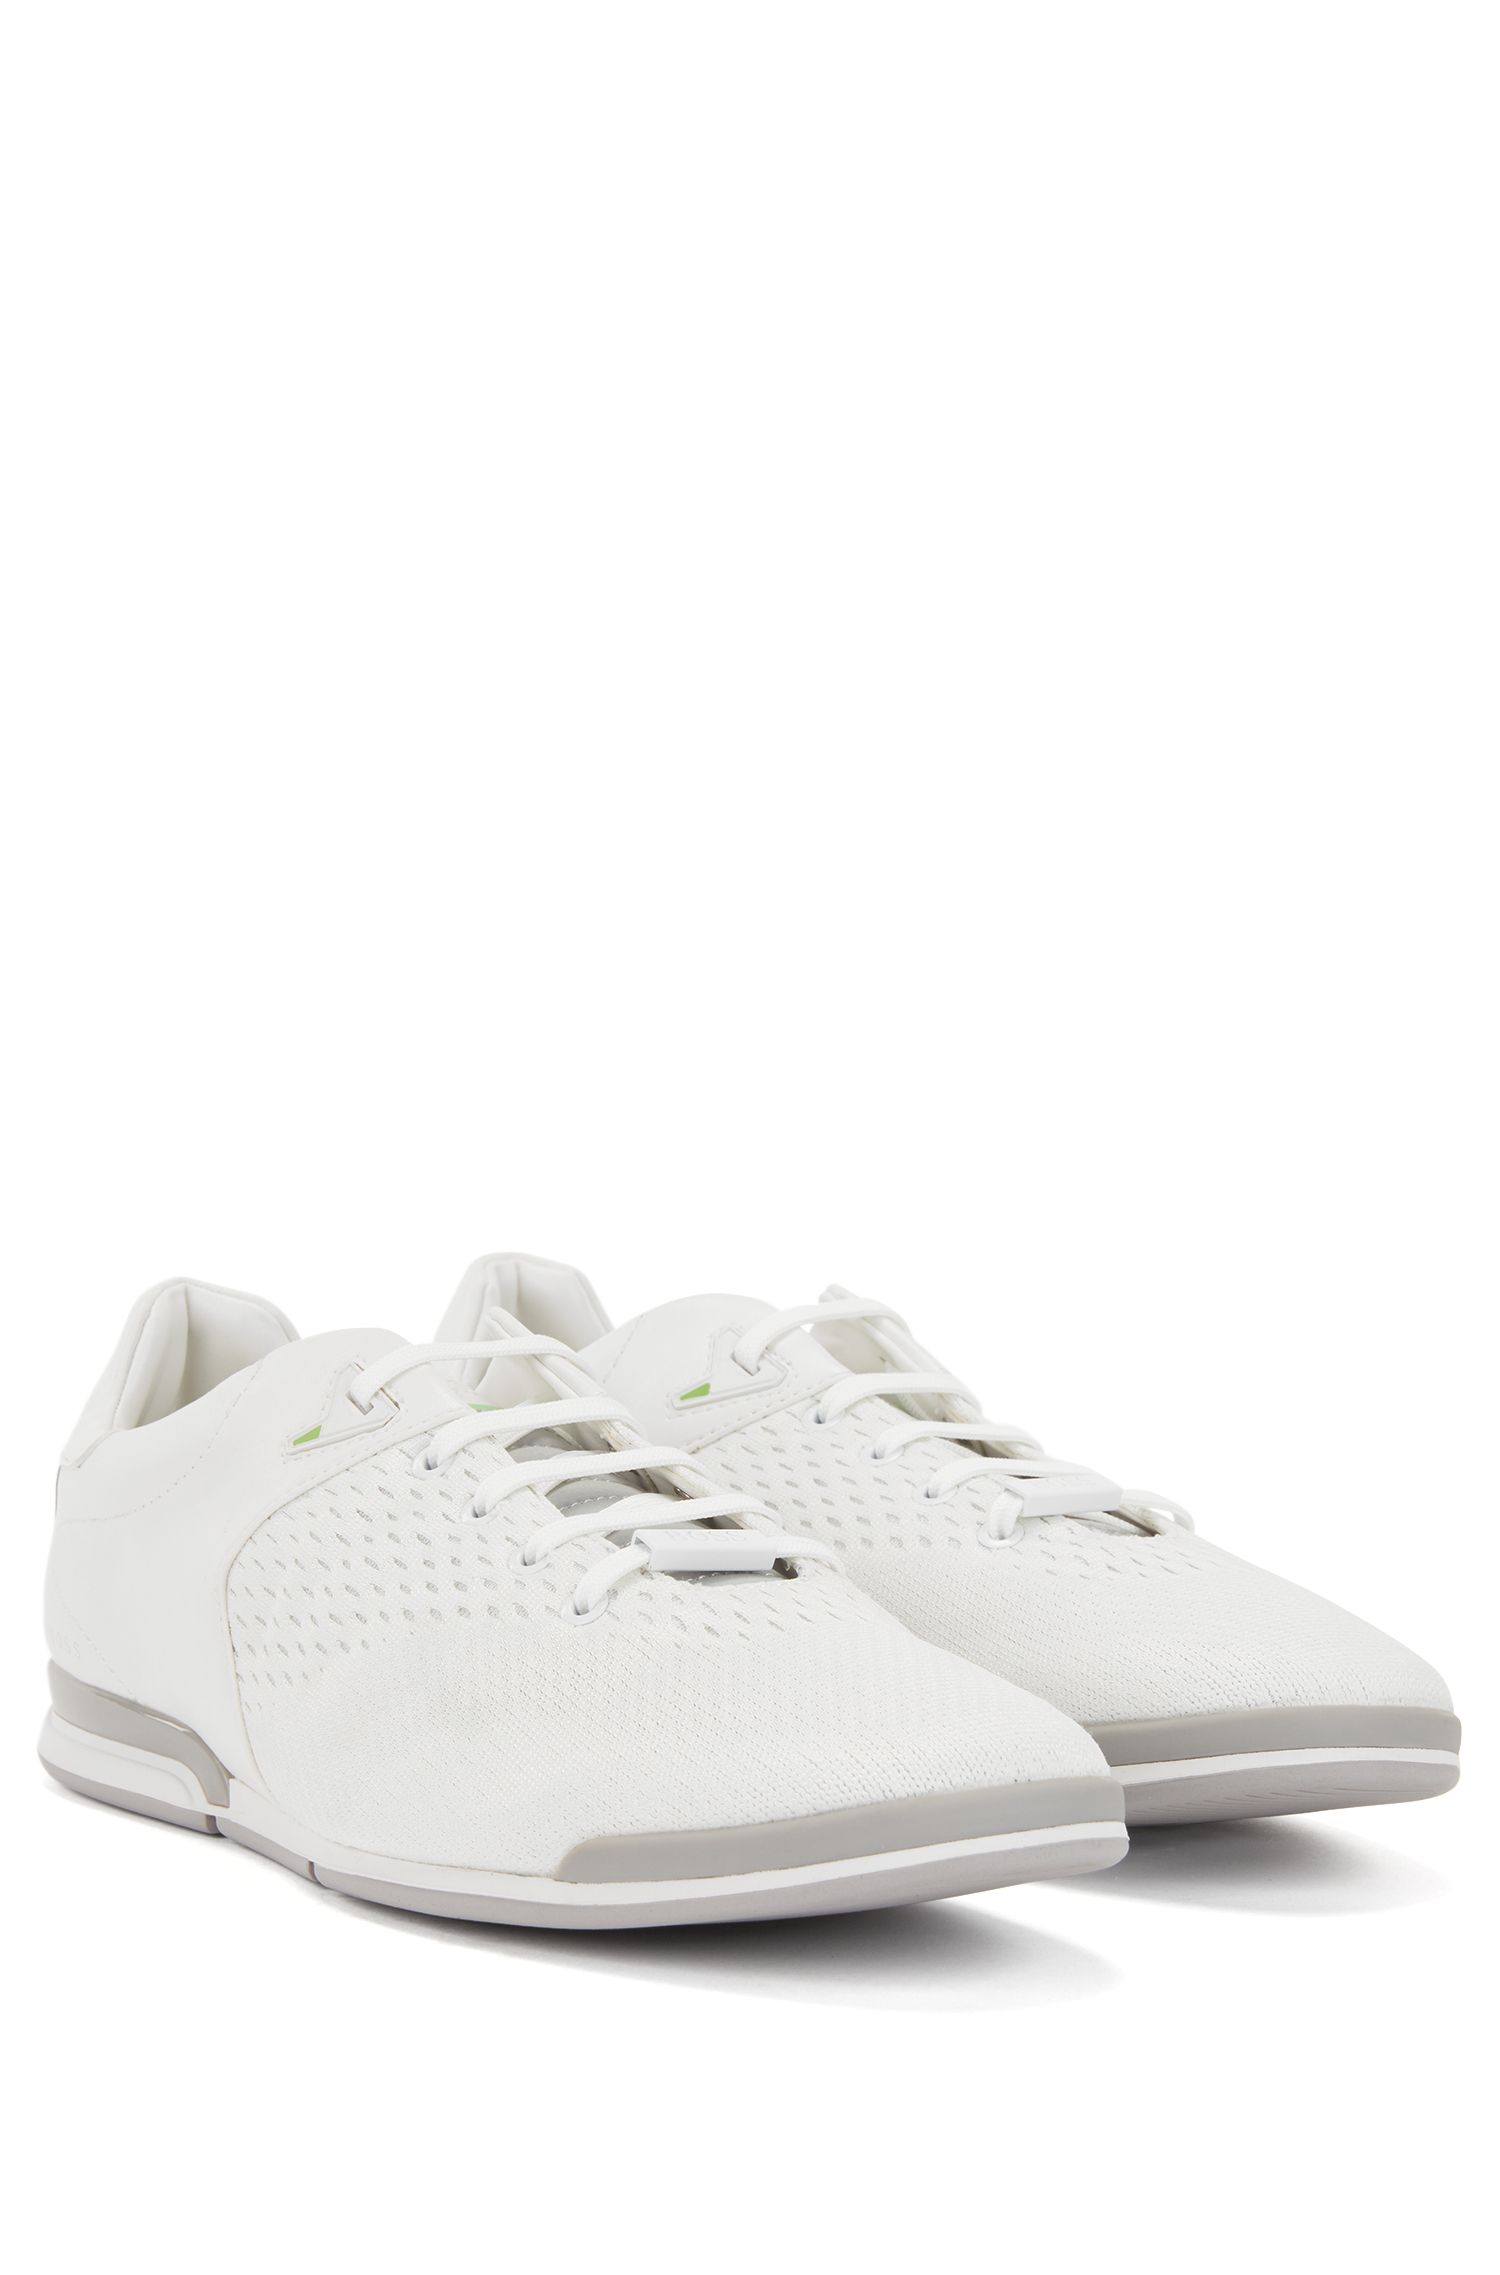 Low-profile trainers with jacquard-knit uppers, White